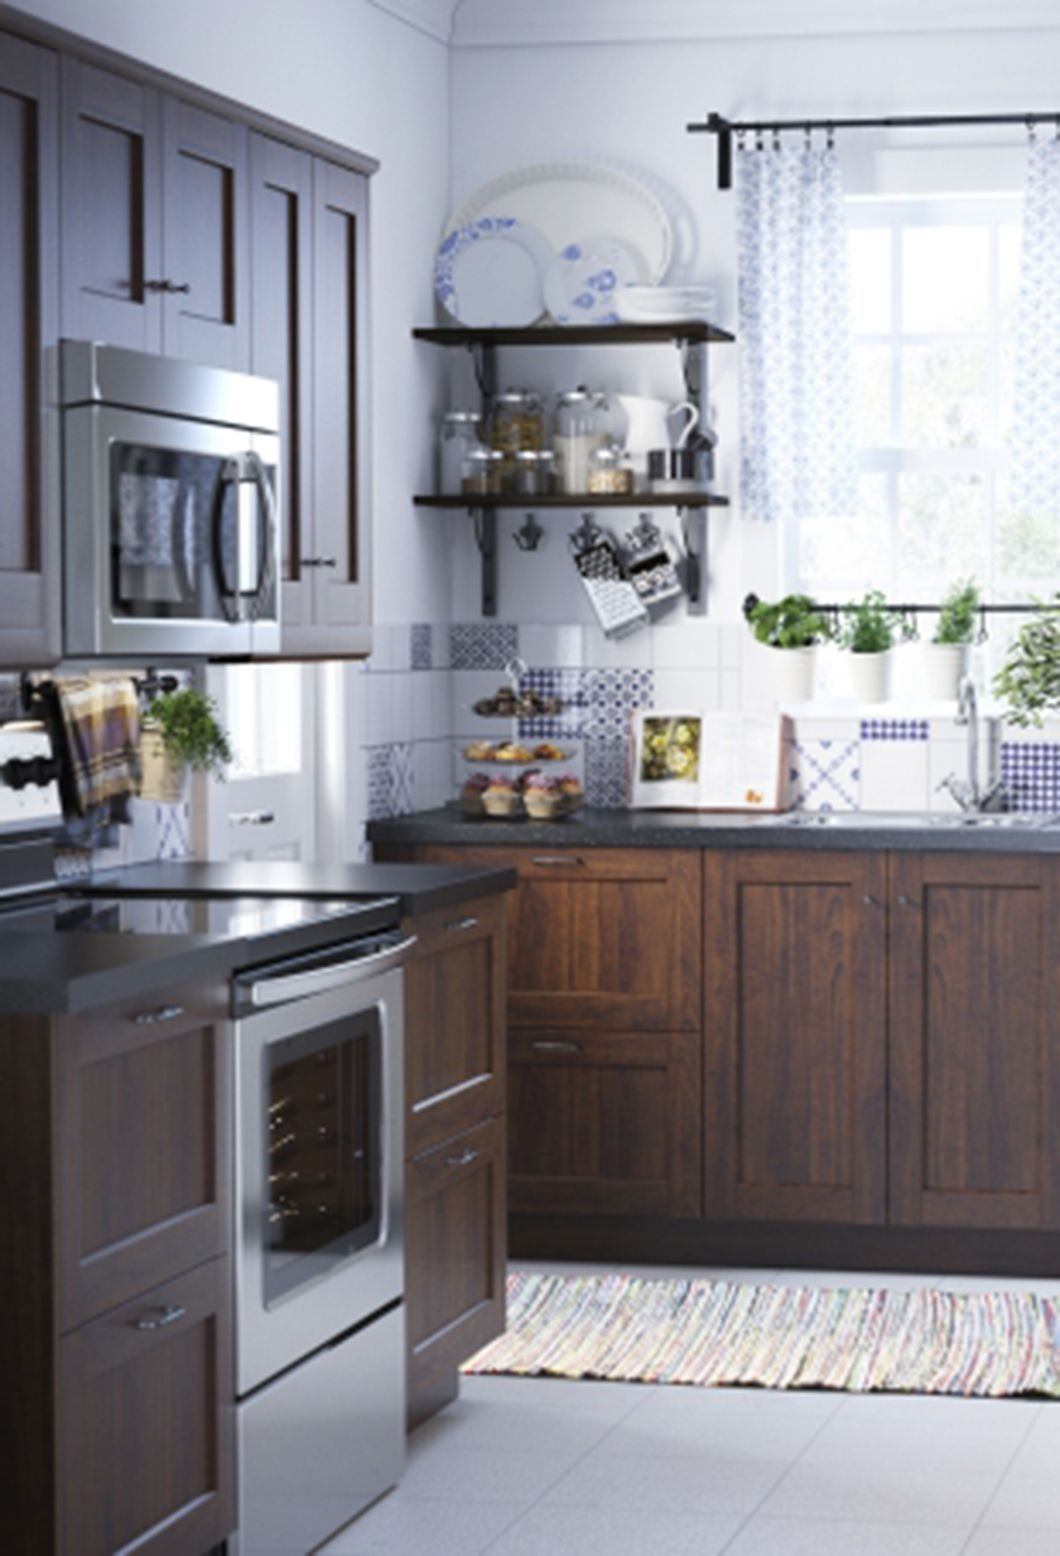 Ikea Kitchen Design Visit Get Inspired To Create Your Dream Kitchen With The Ikea Sektion